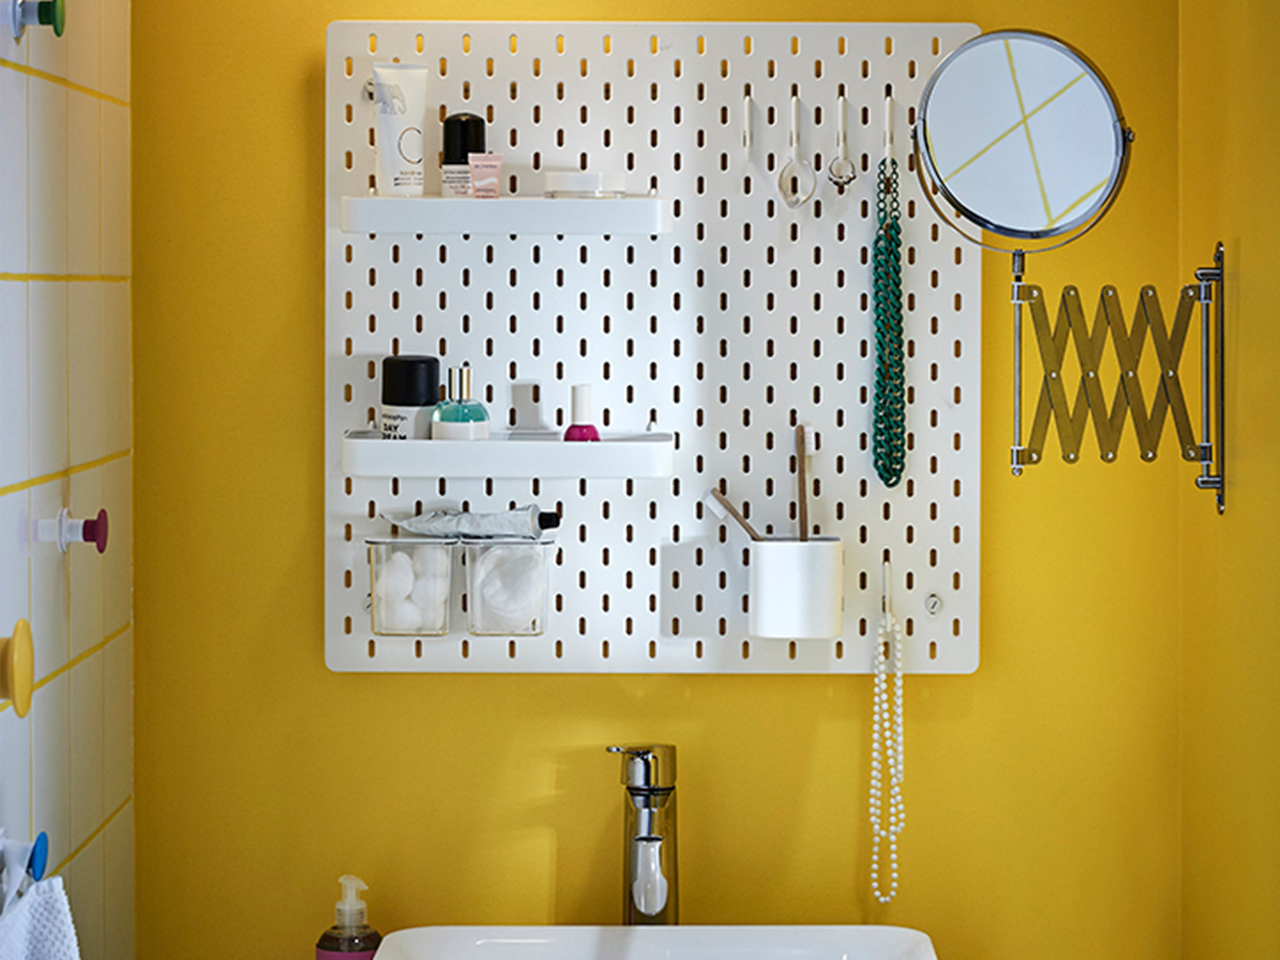 Peg Board Canada Ikea Skadis This Product Will Instantly Organize Any Room